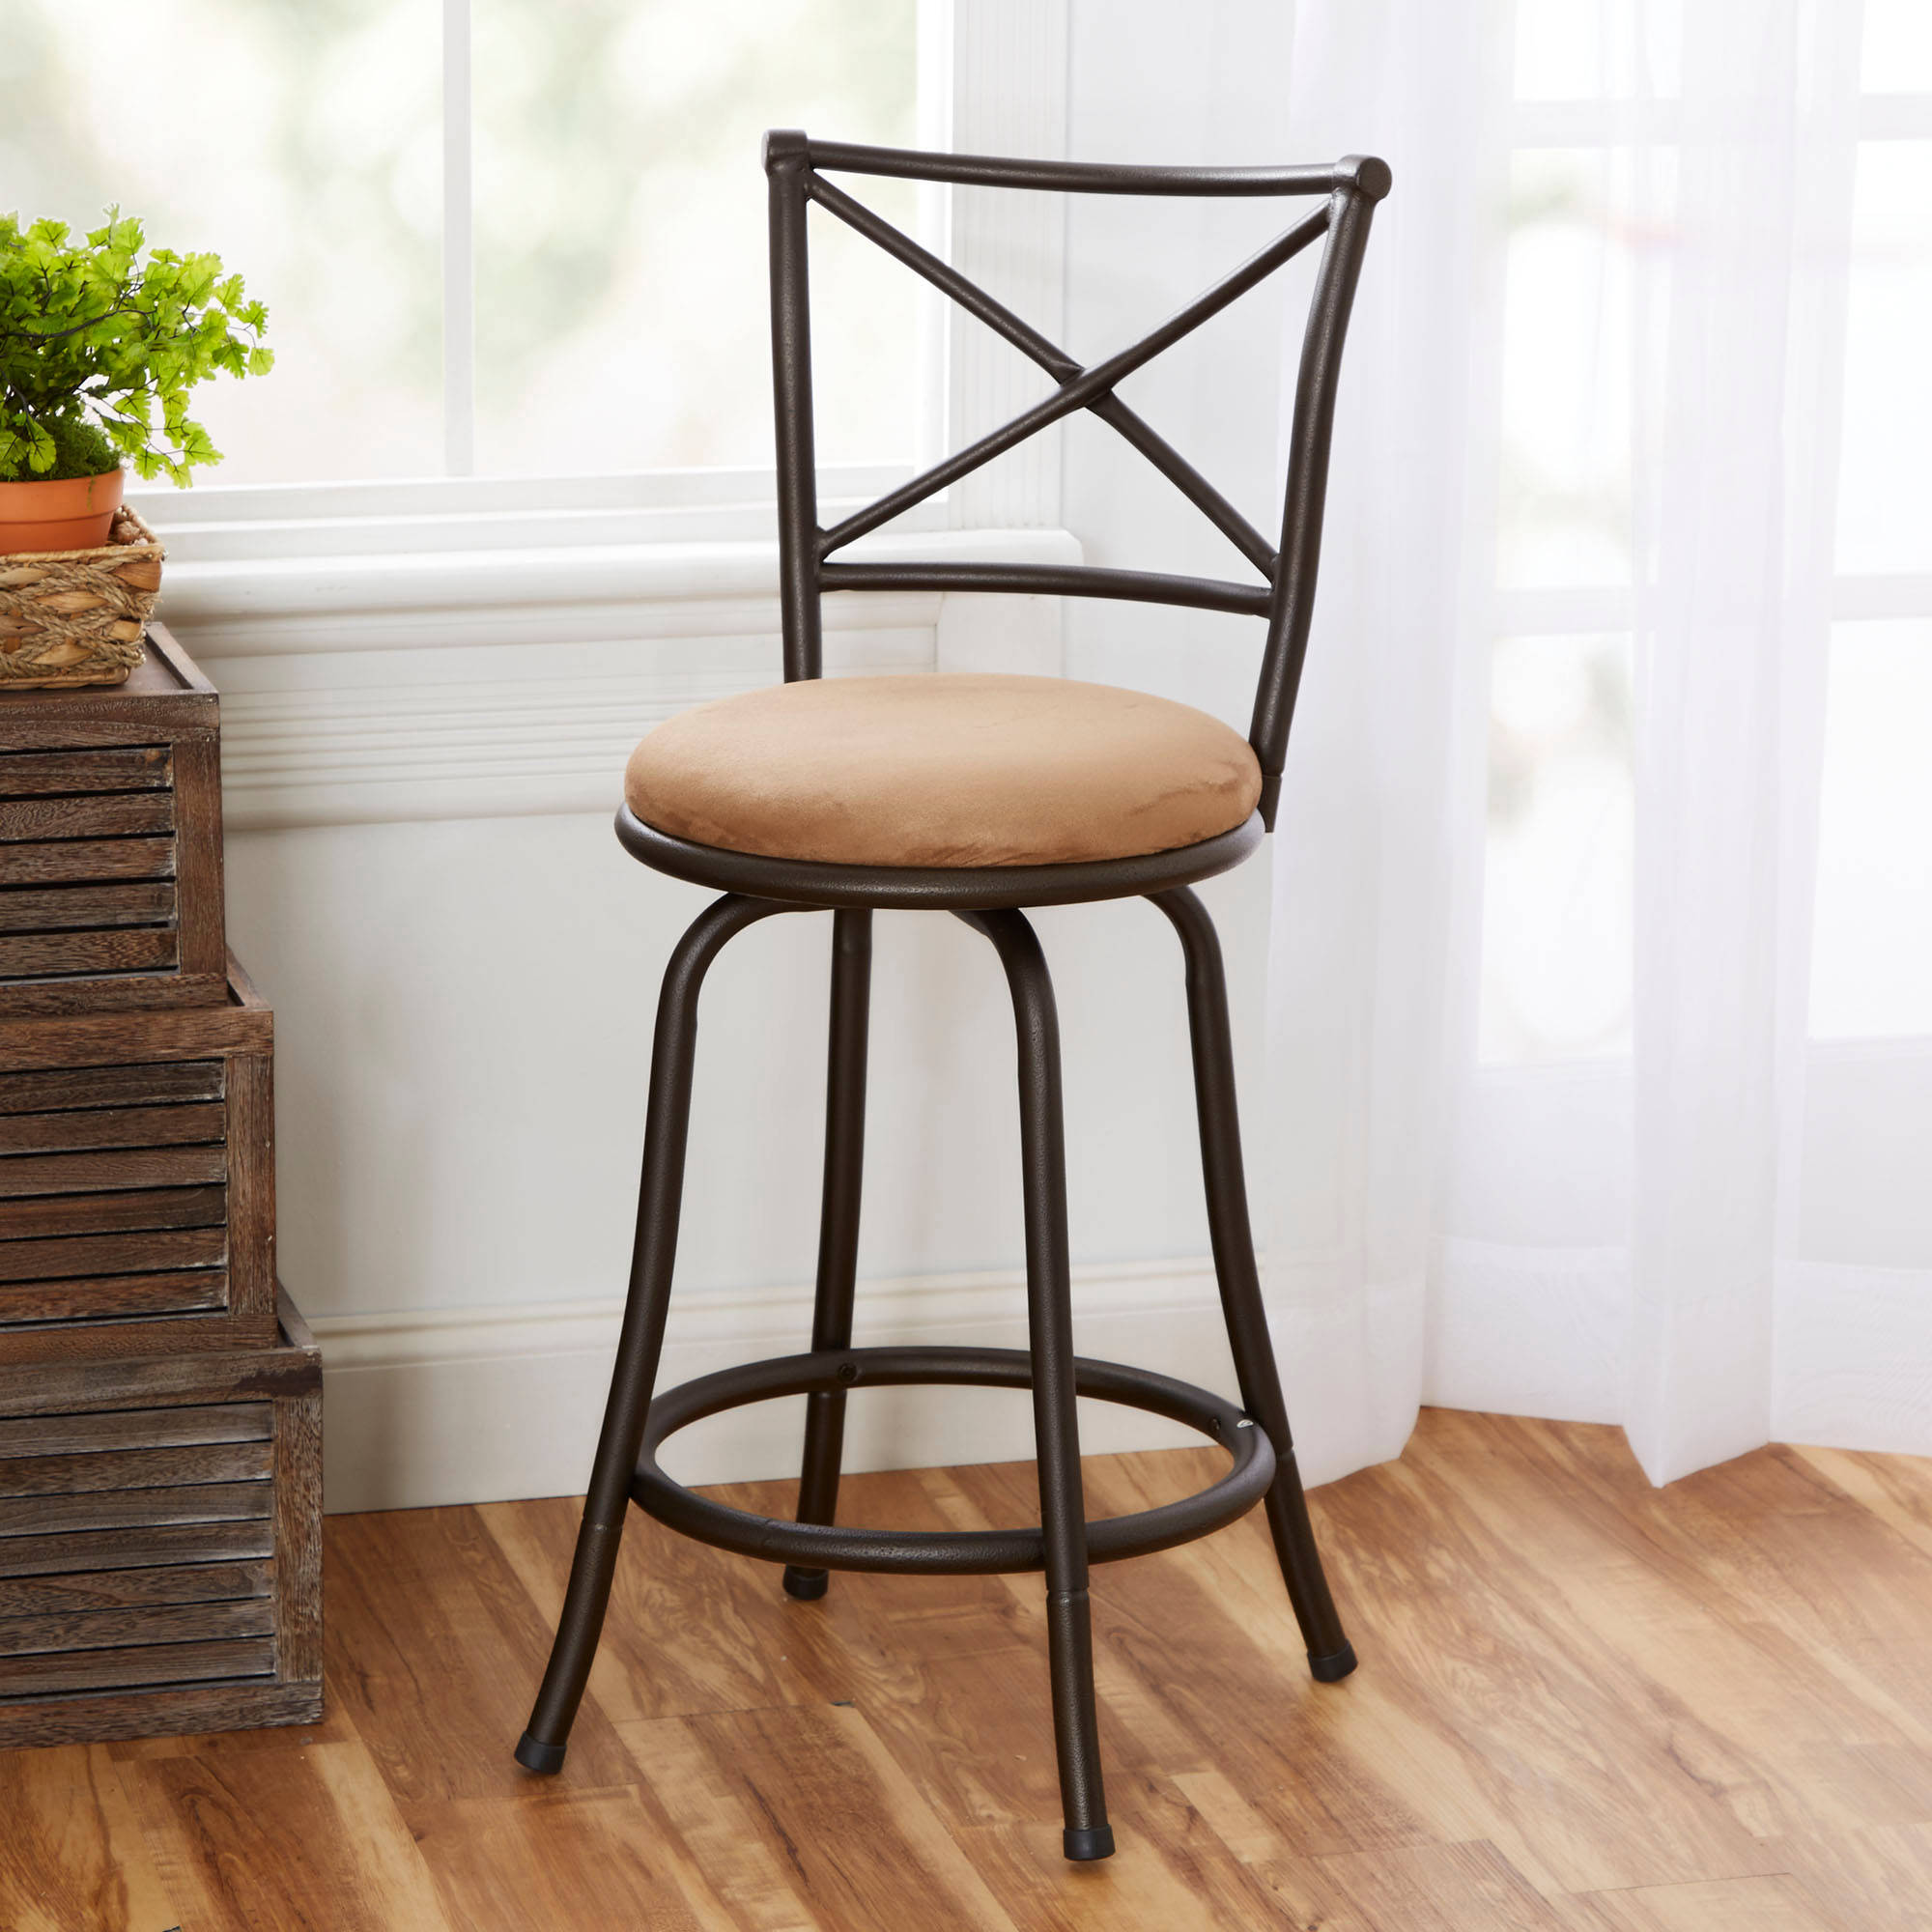 "Mainstays 24"" Swivel X-Back Hammered Bronze Barstool, Multiple Colors"